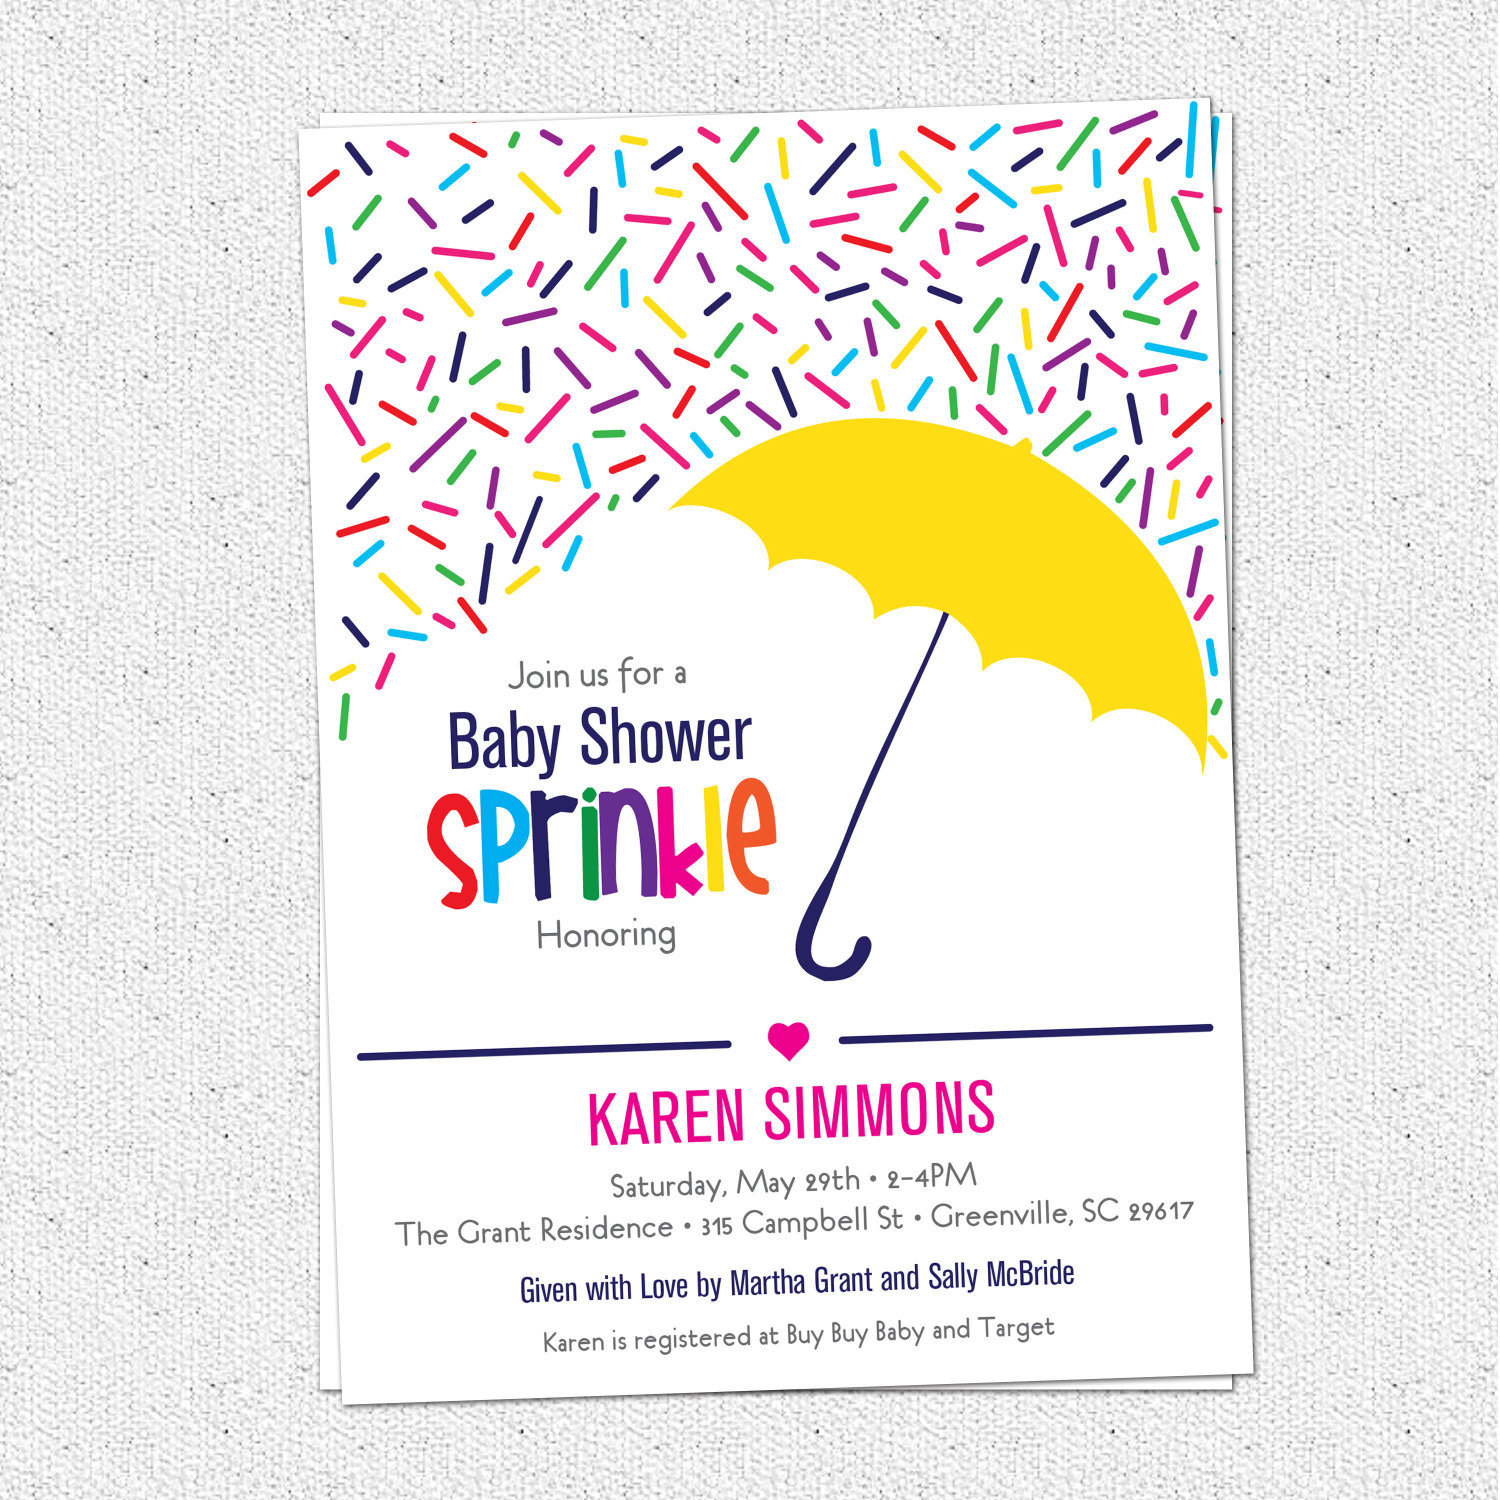 Sprinkle baby shower invitations raining rainbow sprinkles and il fullxfull439293156 4gzg original filmwisefo